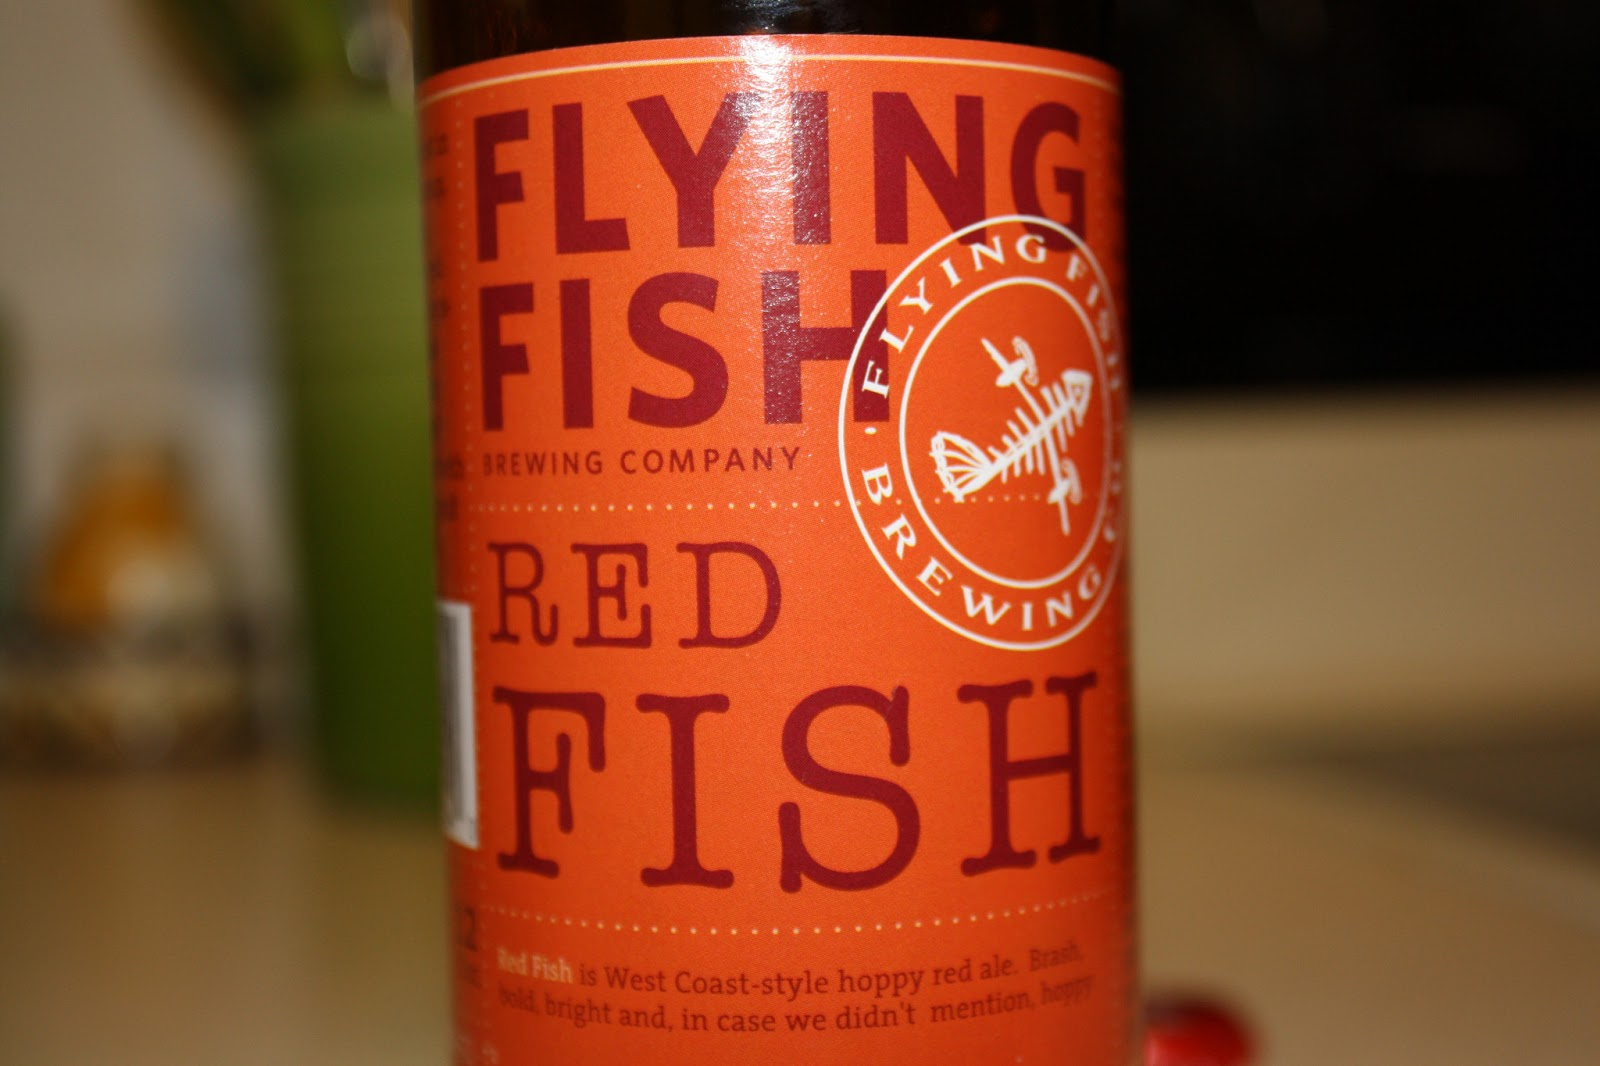 Mould 39 s beer blog flying fish red fish for Flying fish company